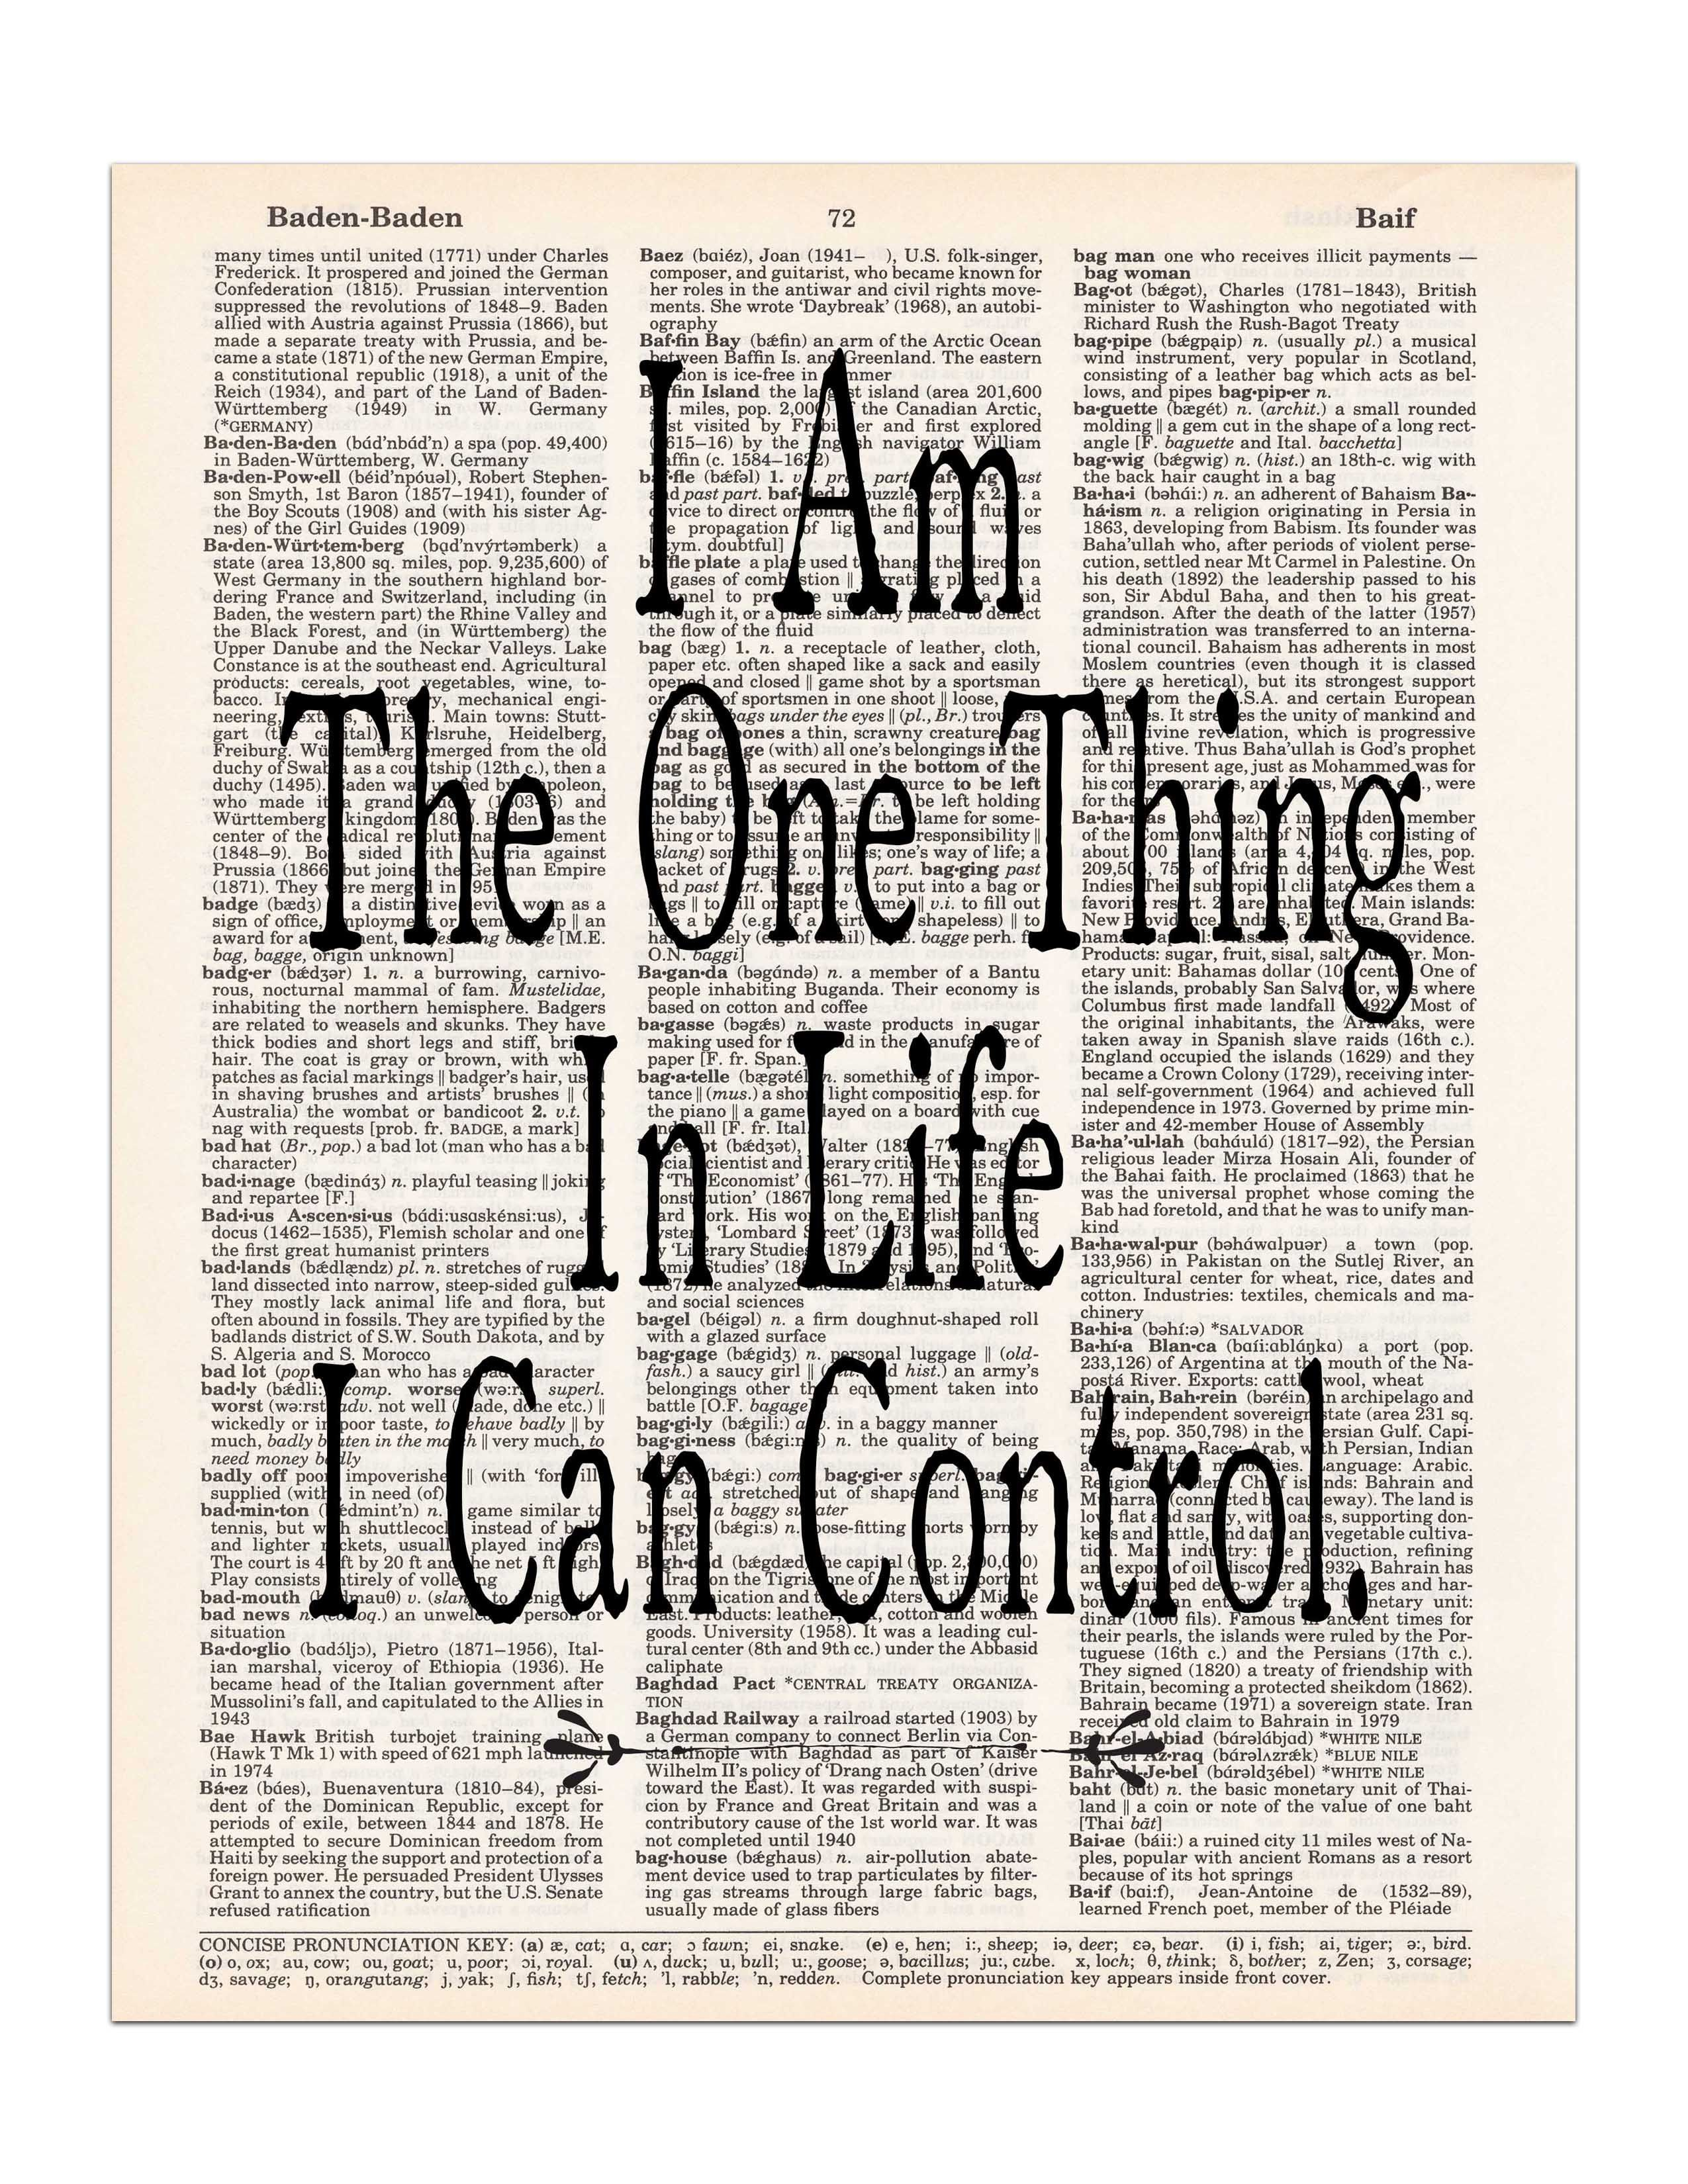 Delirium Quotes With Page Numbers: I Am The One Thing In Life I Can Control, Hamilton Quote